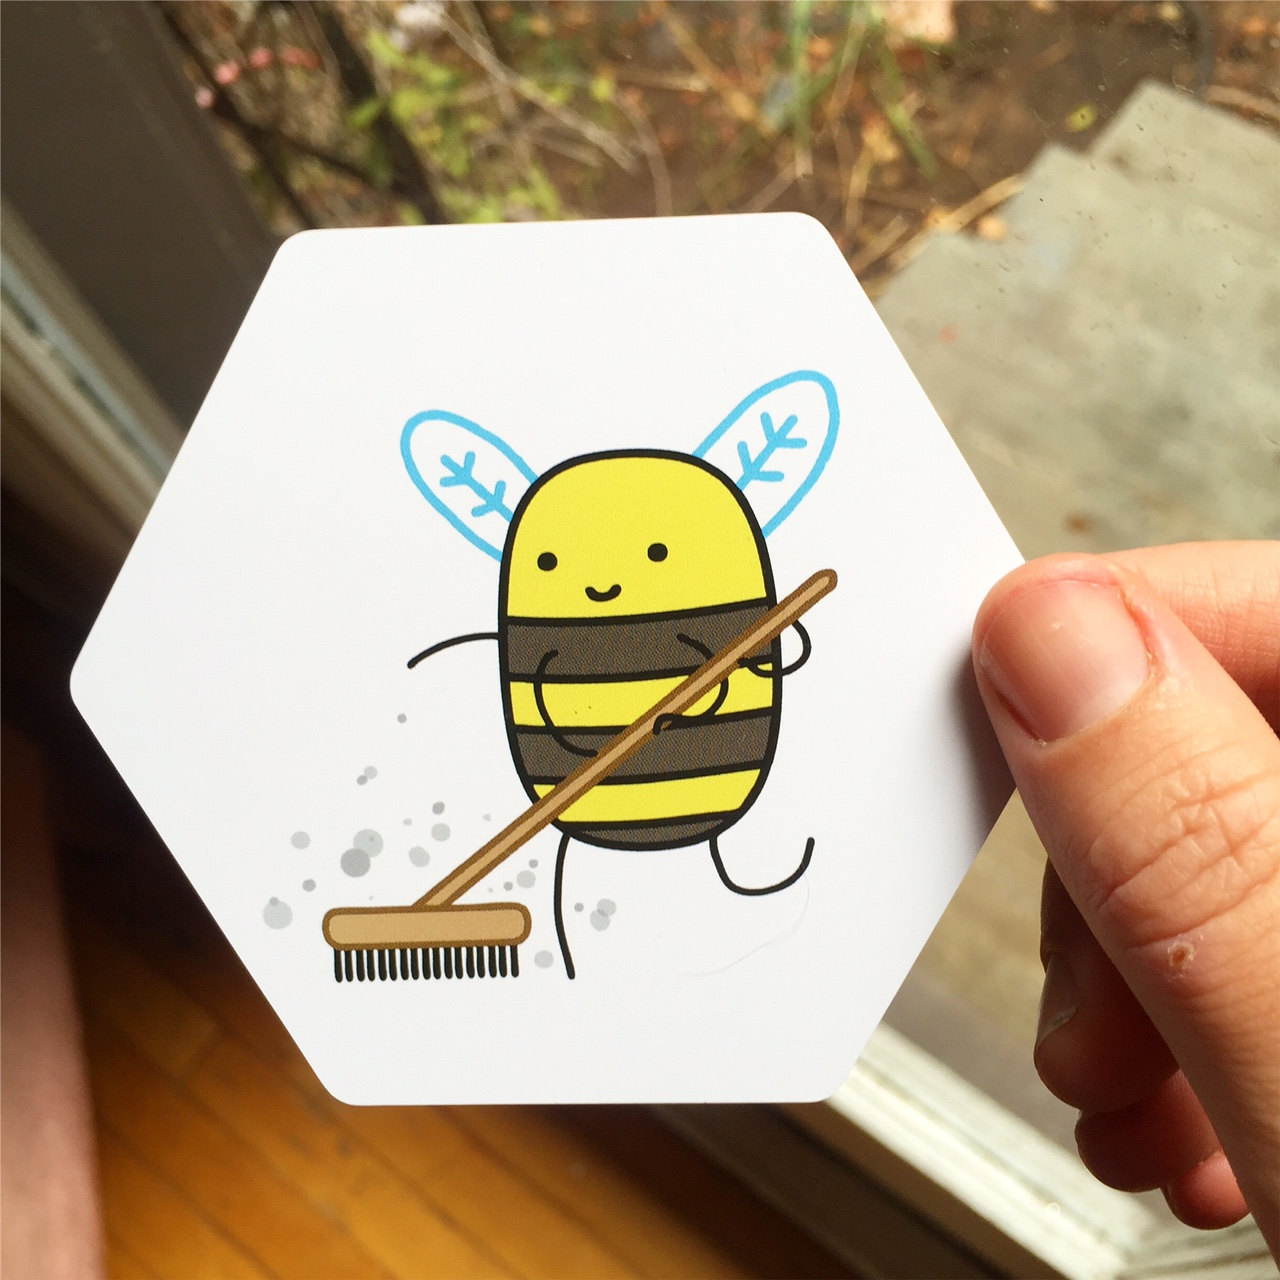 The Story of Bees! Educational Game that teaches kids about bees.